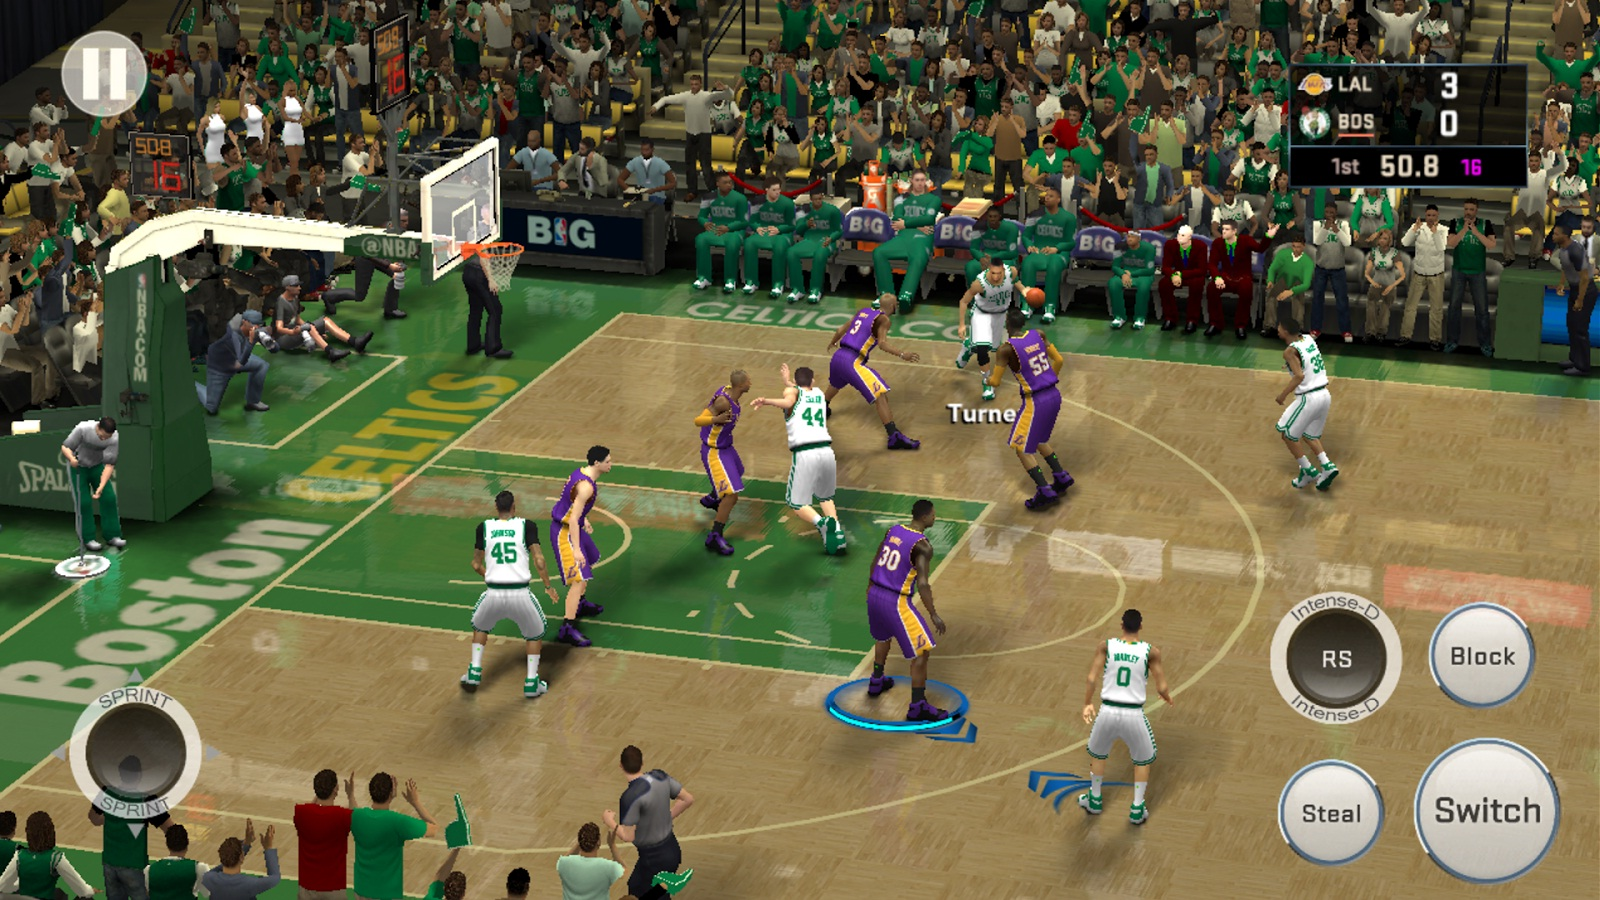 Free Android Cracked Games: NBA 2K16 APK Cracked Game